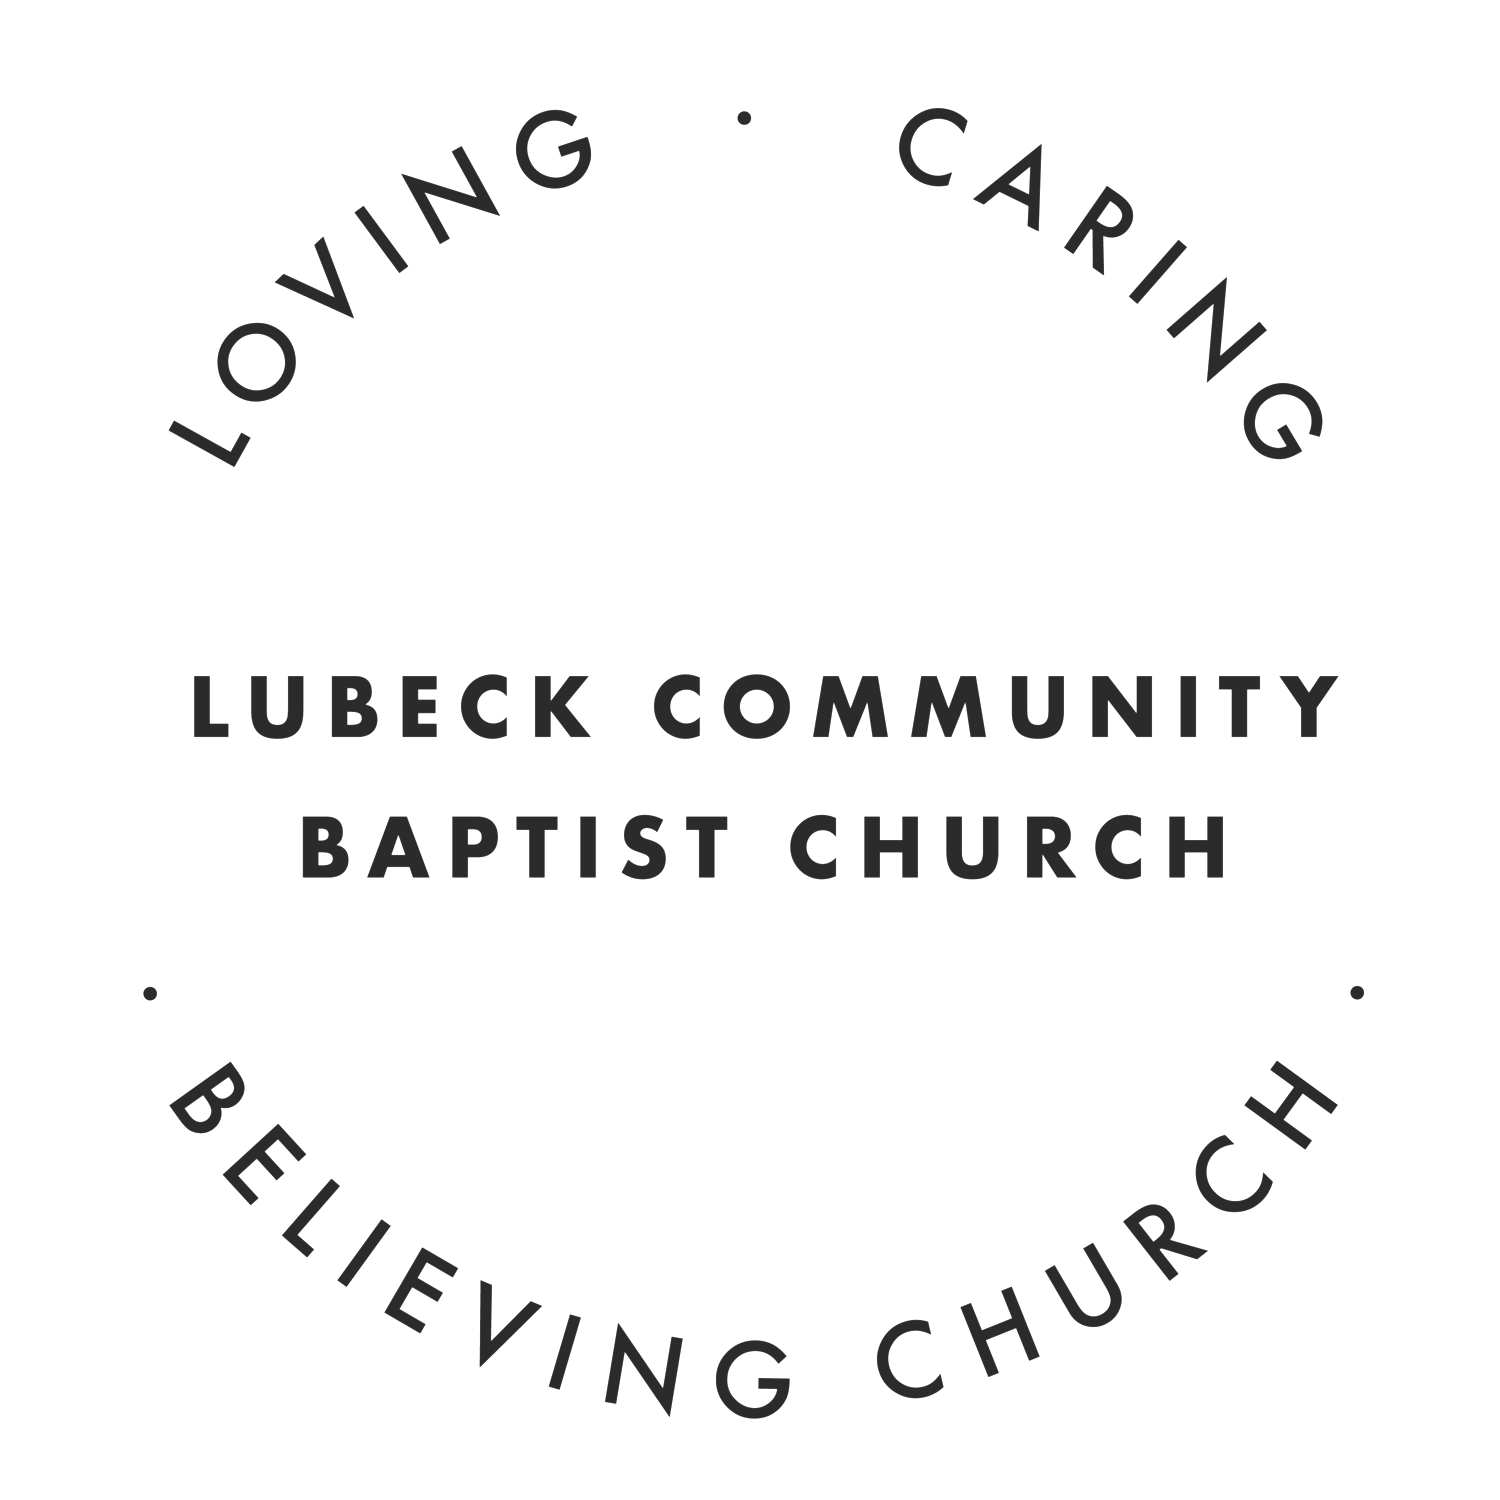 Lubeck Community Baptist Church